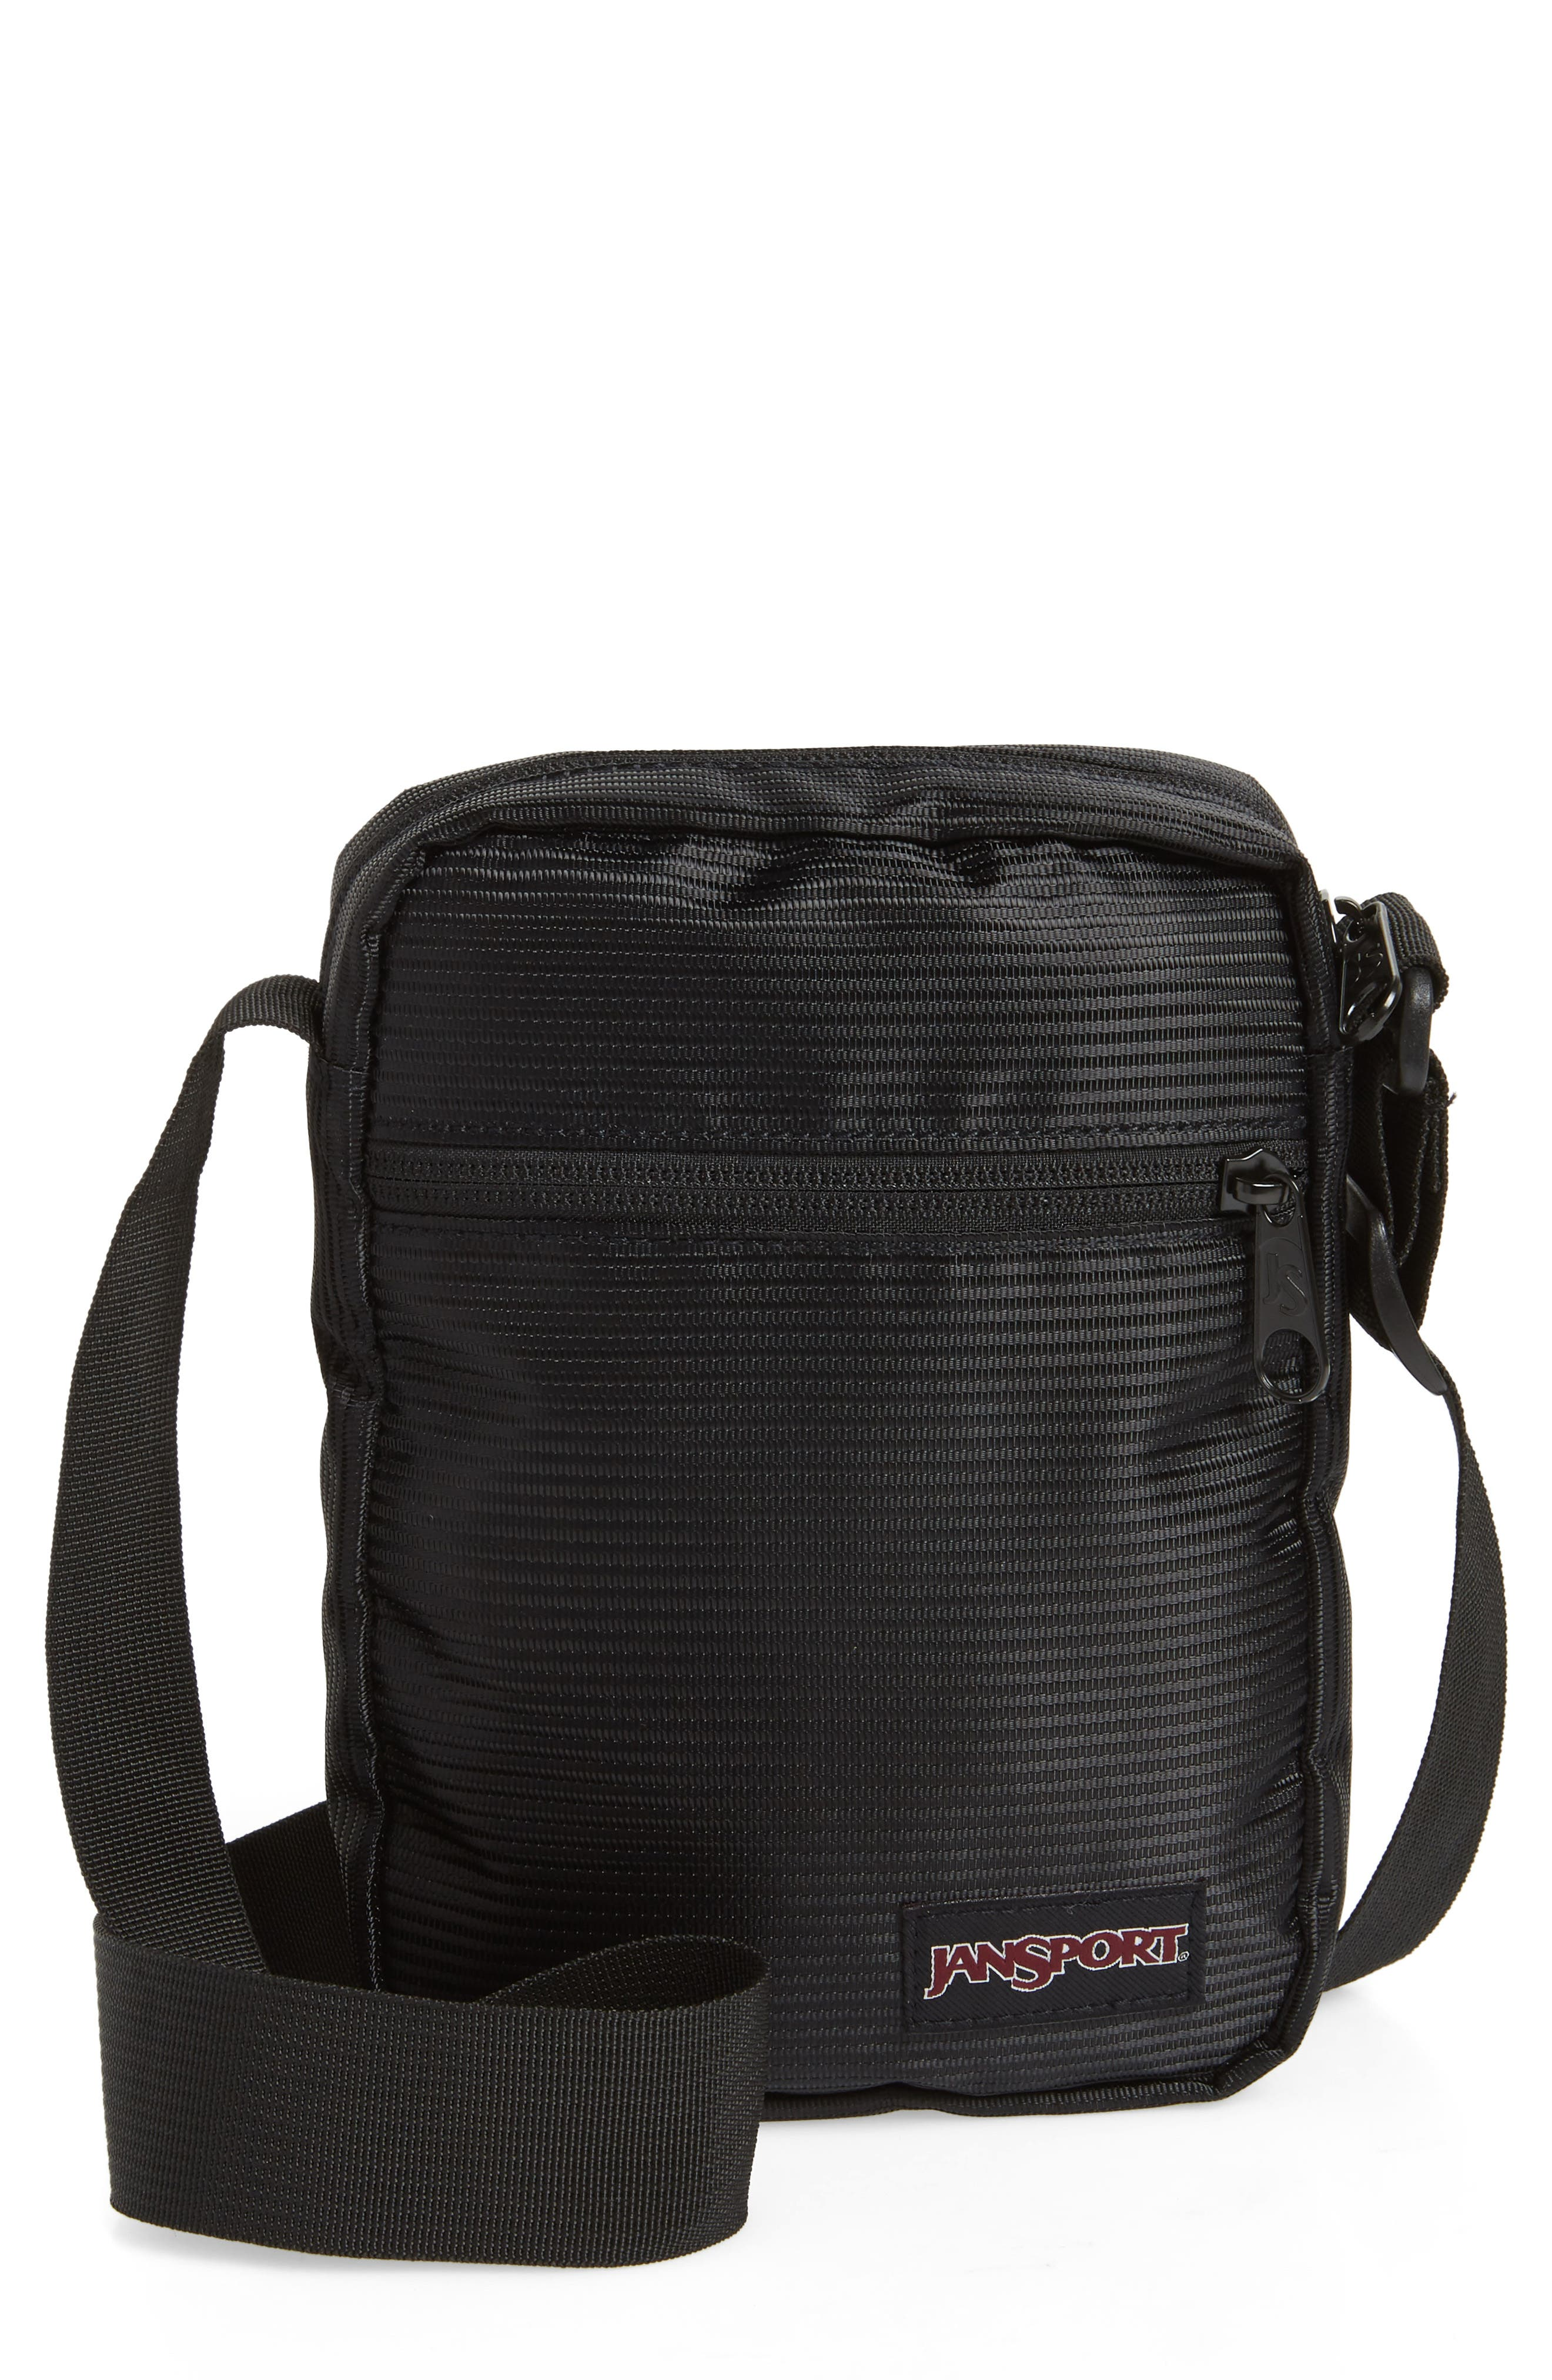 Crossbody FX Bag,                             Main thumbnail 1, color,                             BLACK LINE CORD